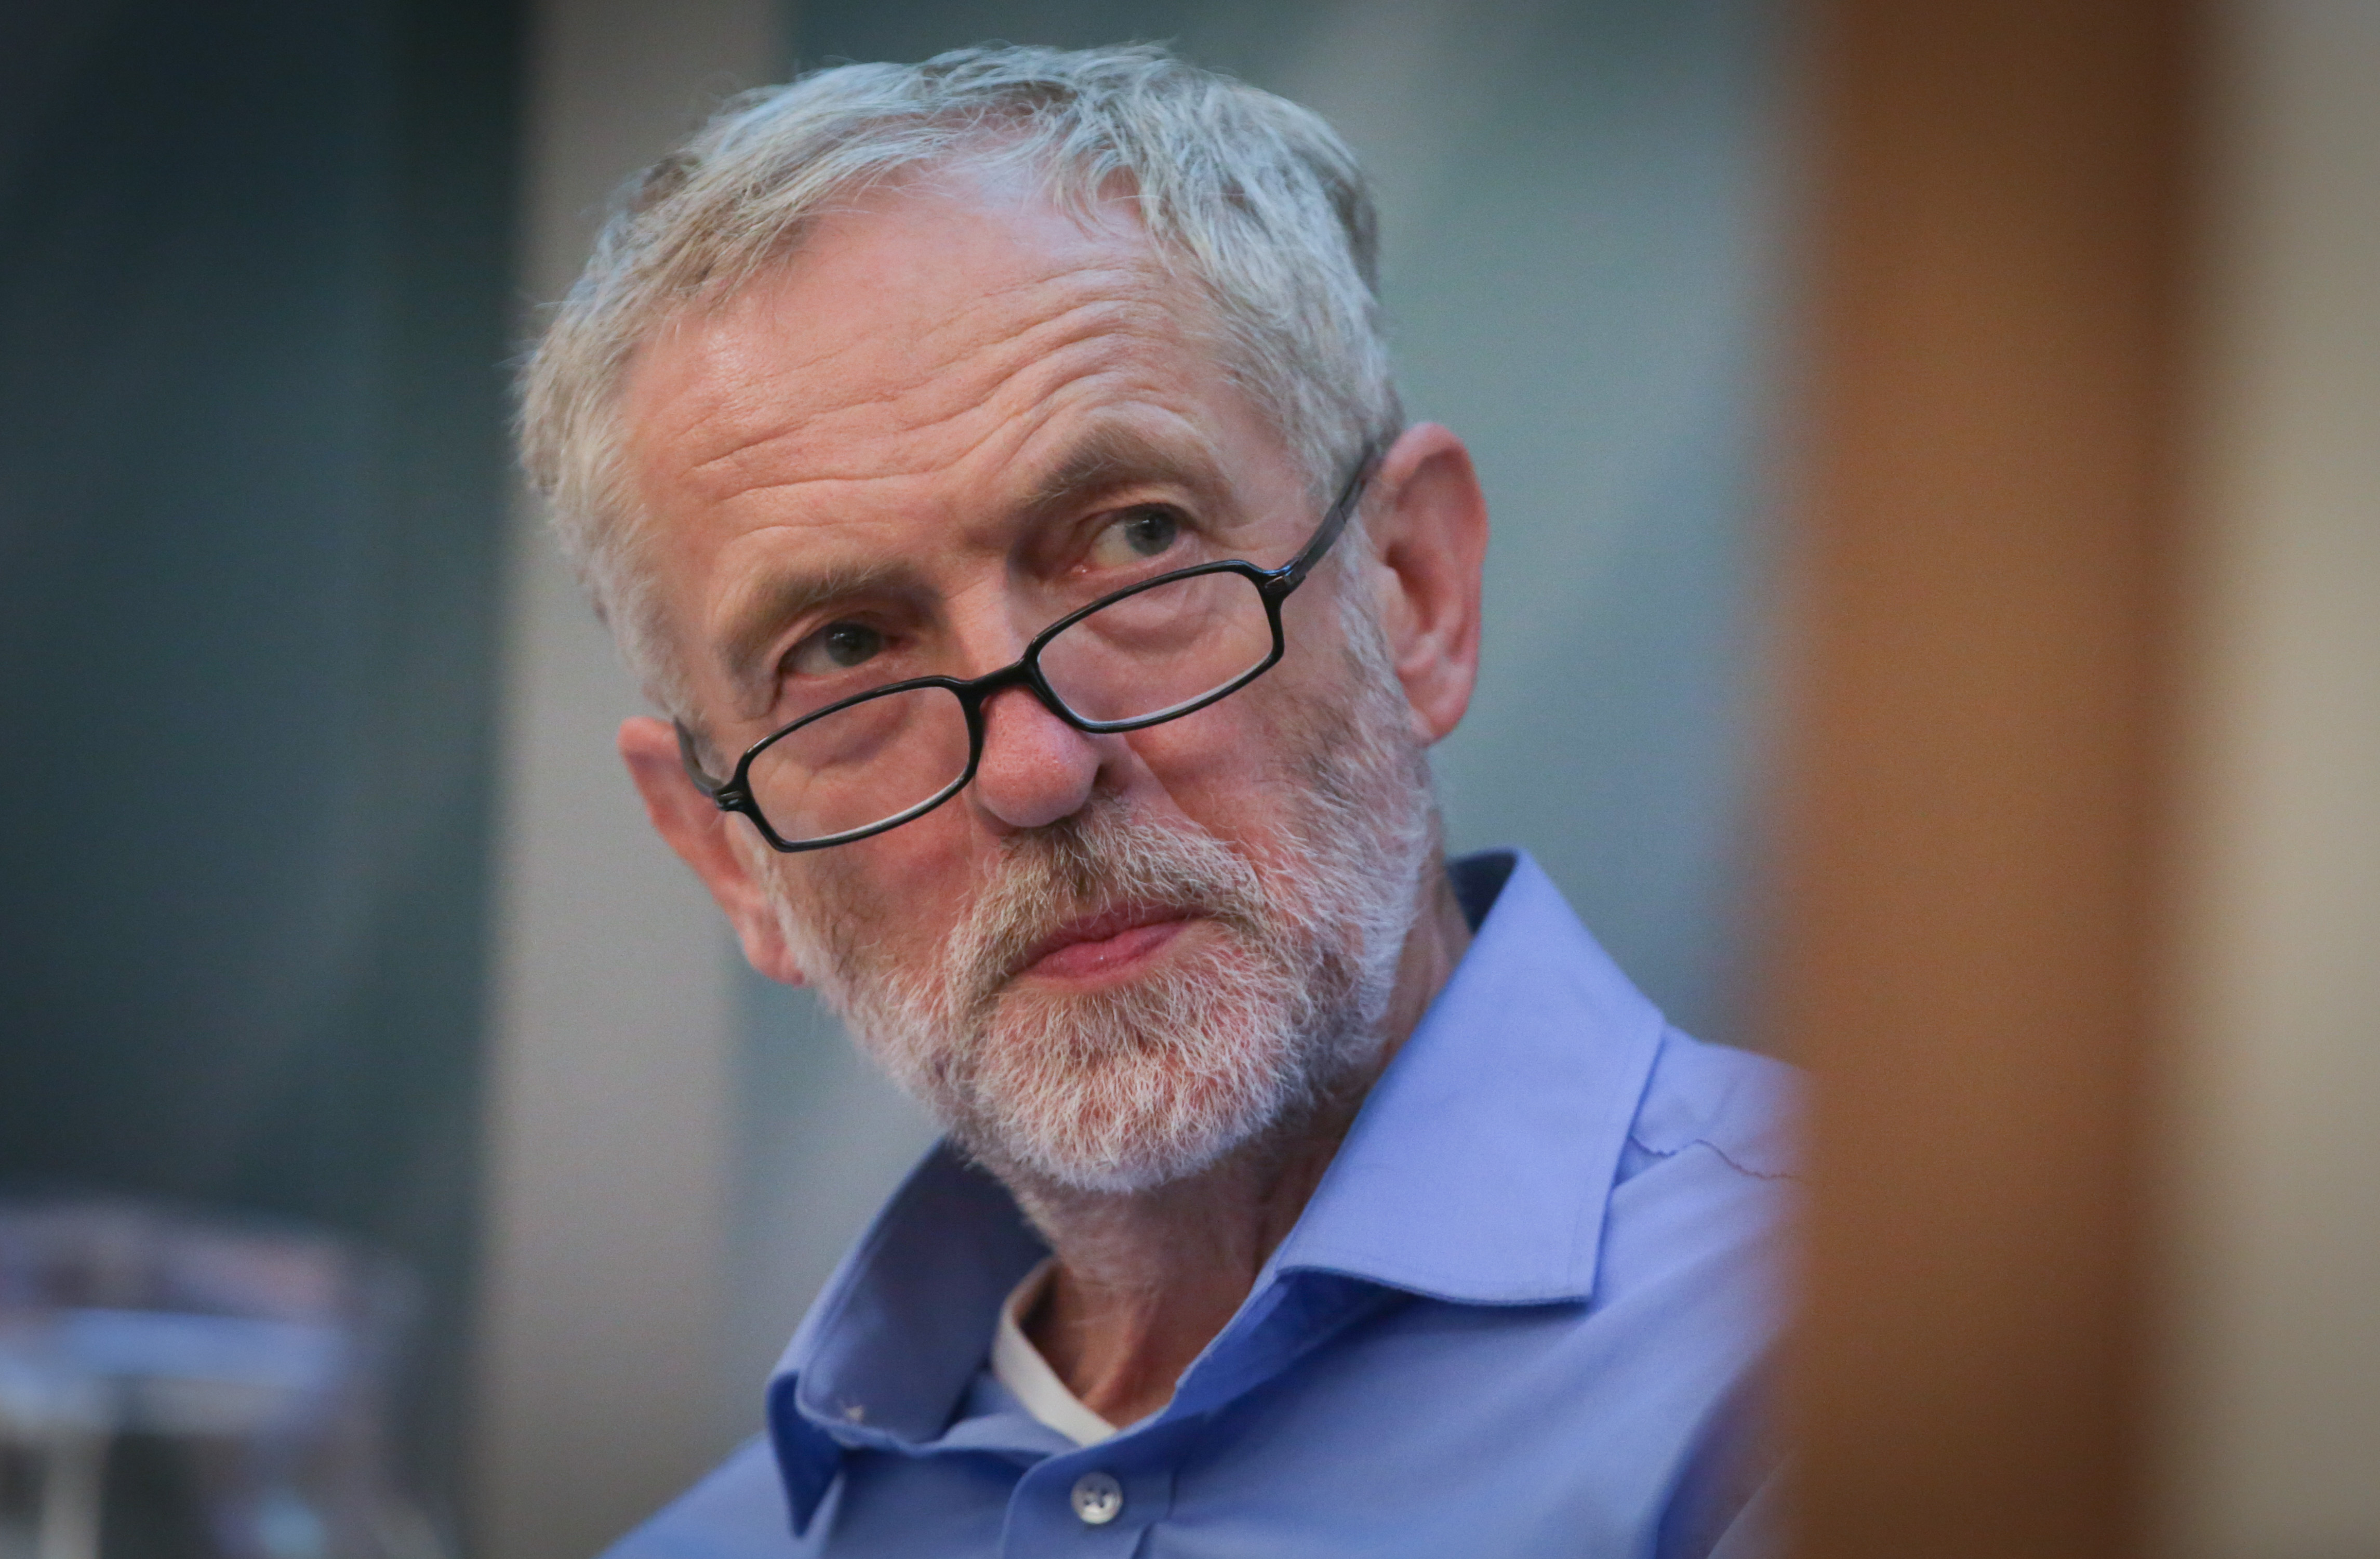 Labour leadership candidate Jeremy Corbyn listens to other speakers as he waits to speak at a rally for supporters at the Hilton at the Ageas Bowl  in Southampton, England, on Aug. 25, 2015.